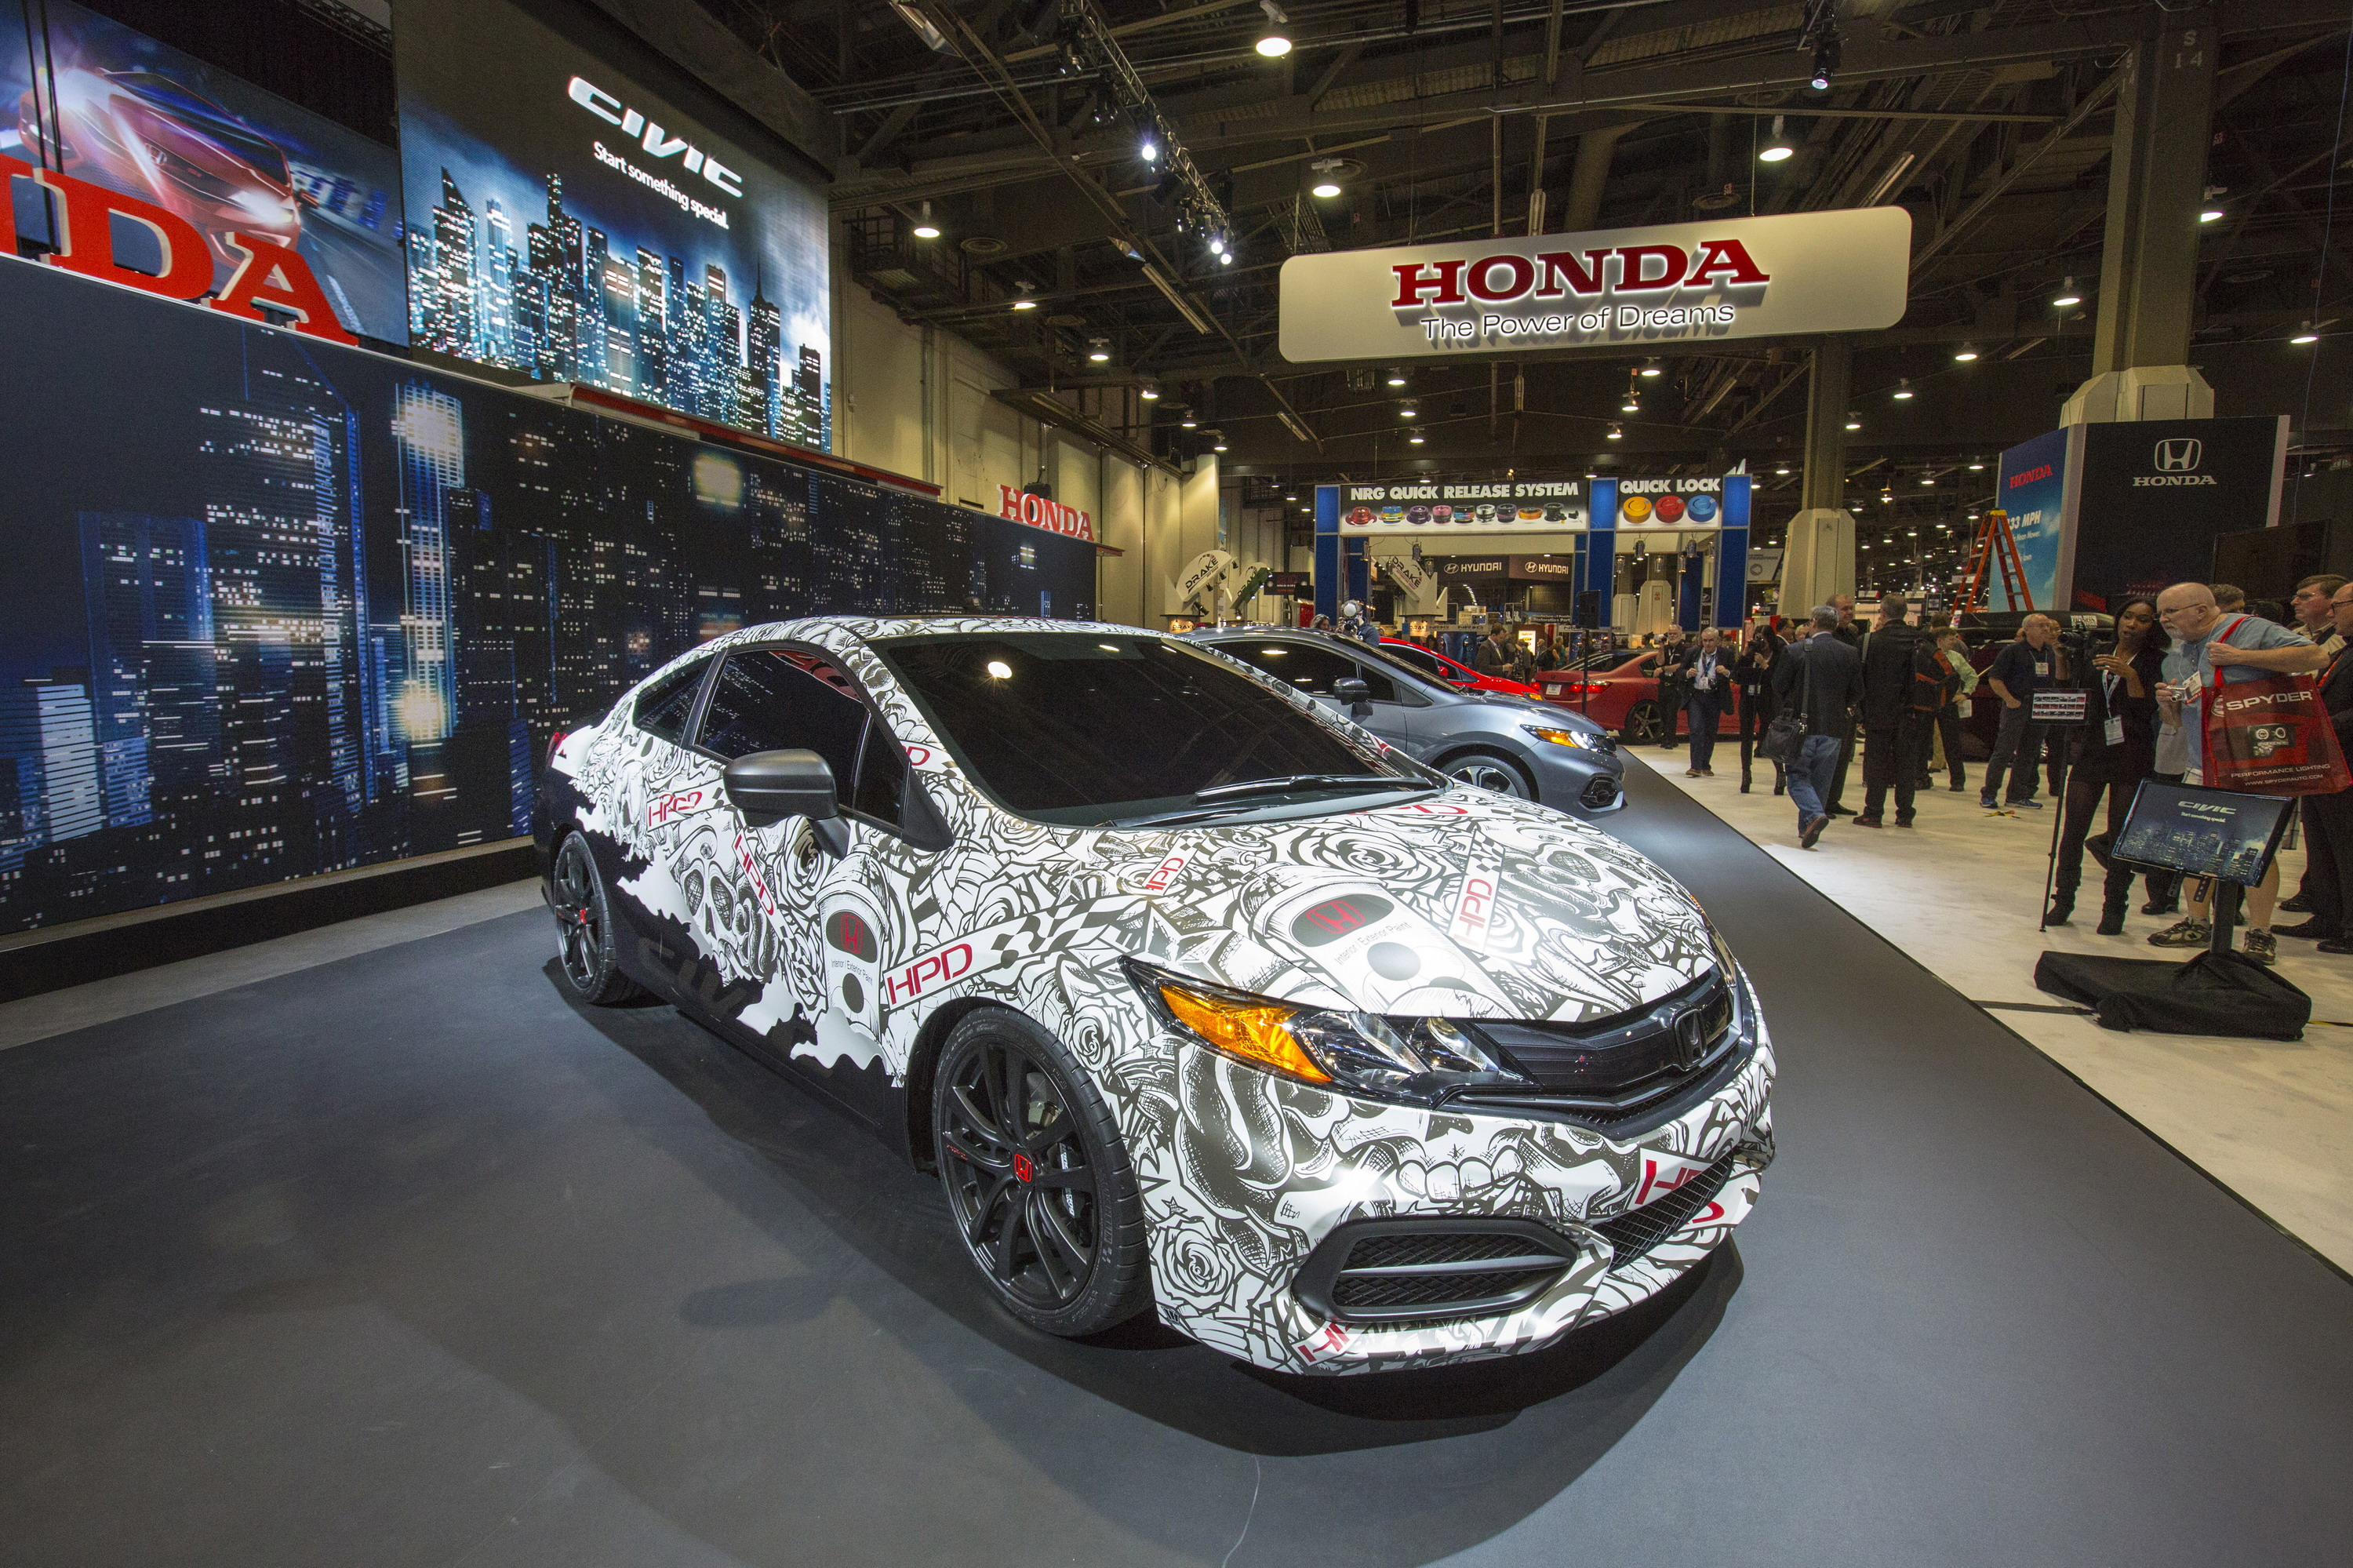 2014 Honda Hpd Civic Street Performance Concept Top Speed